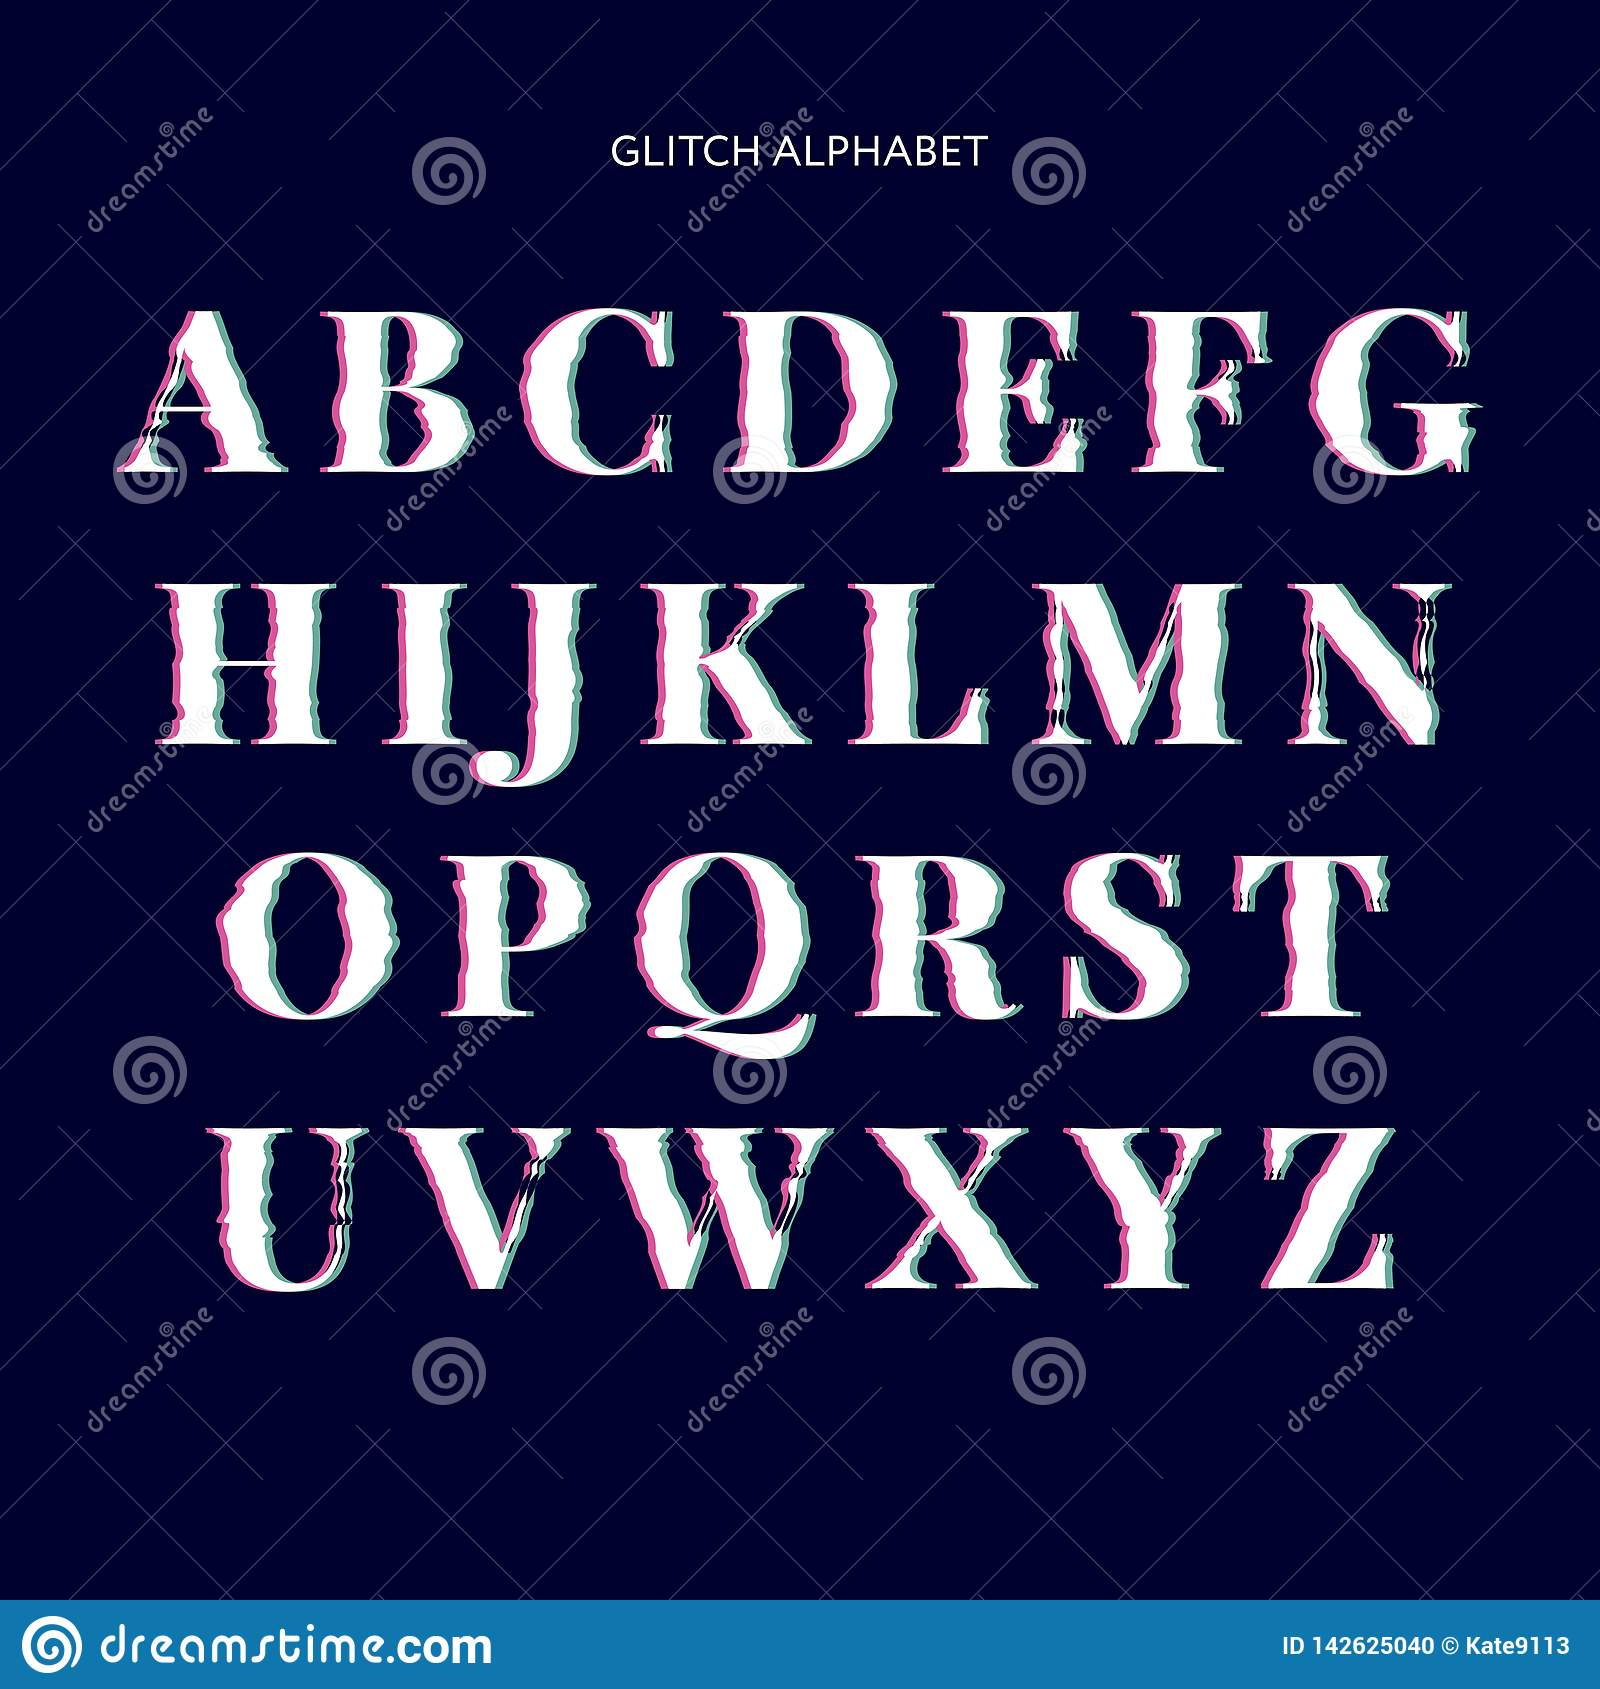 Vector distorted glitch font. Trendy style lettering typeface. Latin letters from A to Z